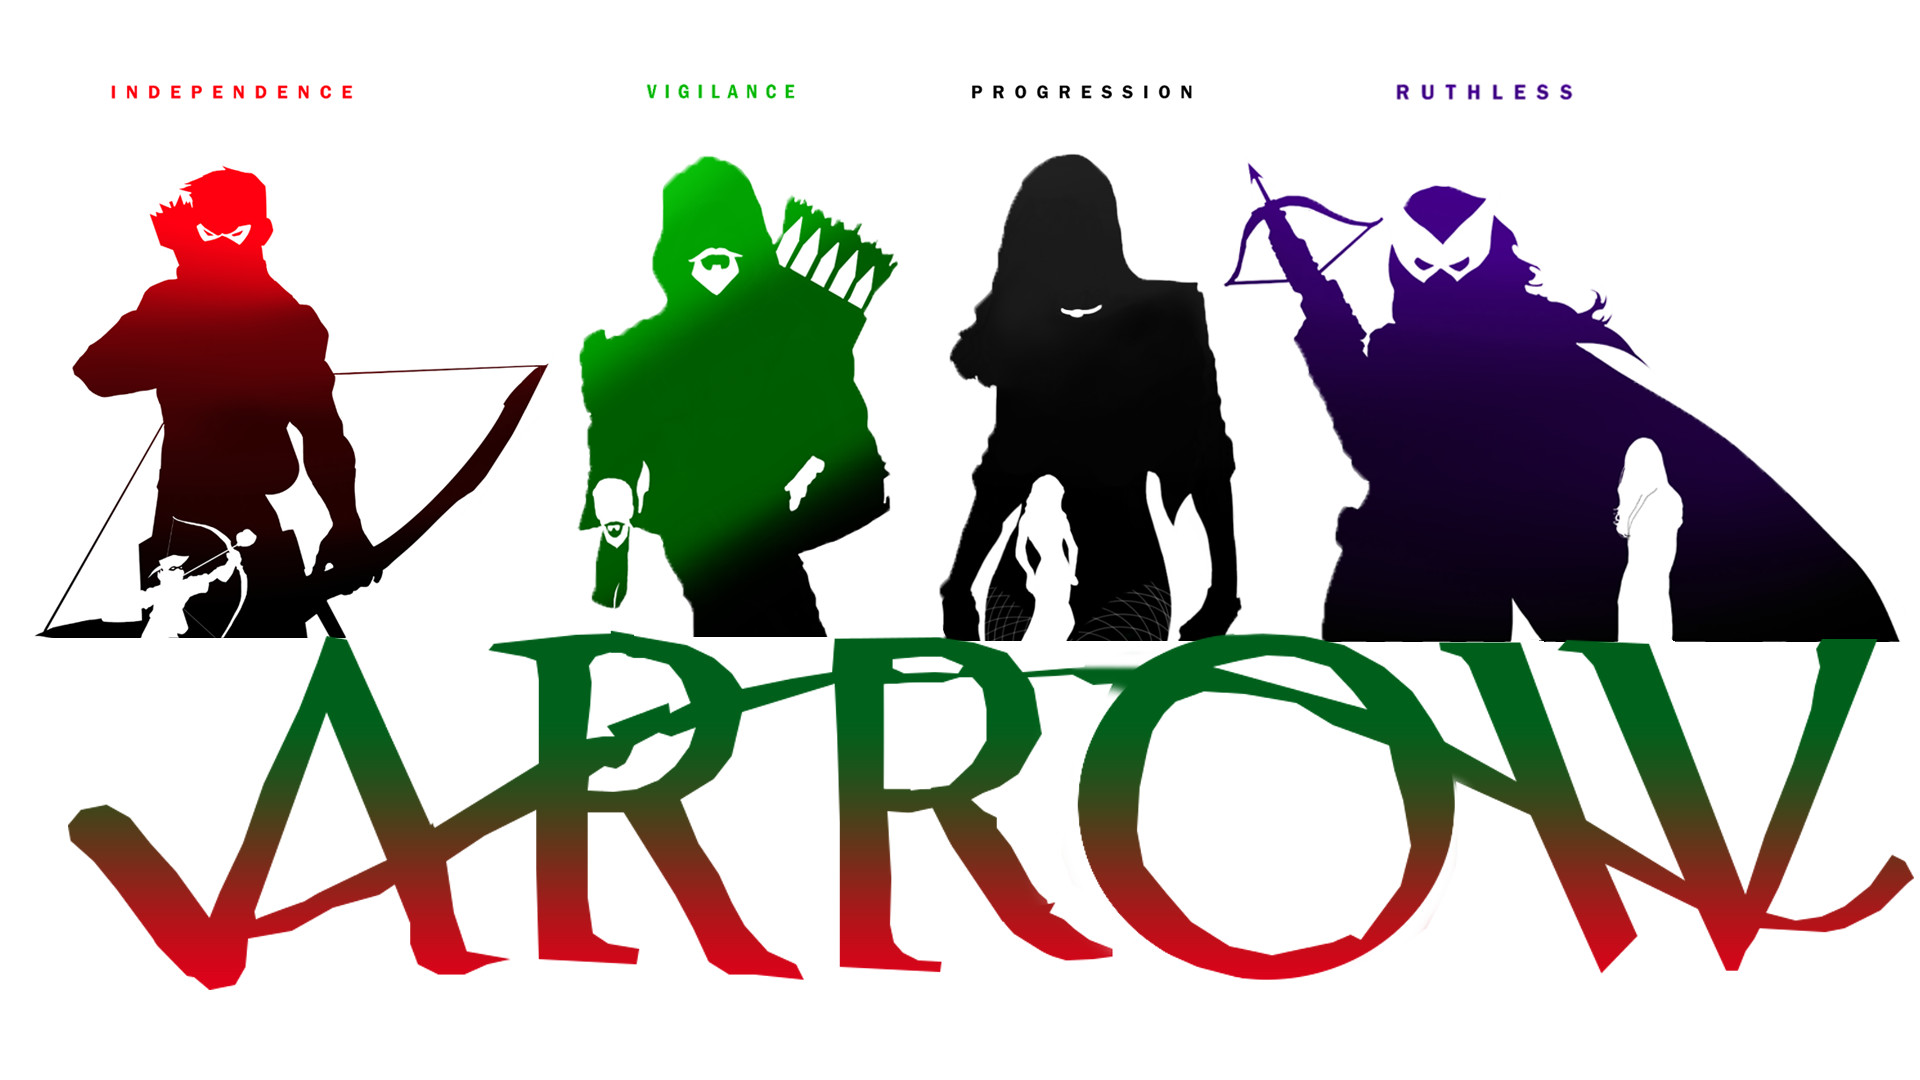 HDQ Cover Green Arrow Pictures 0.41 Mb, NMgnCP